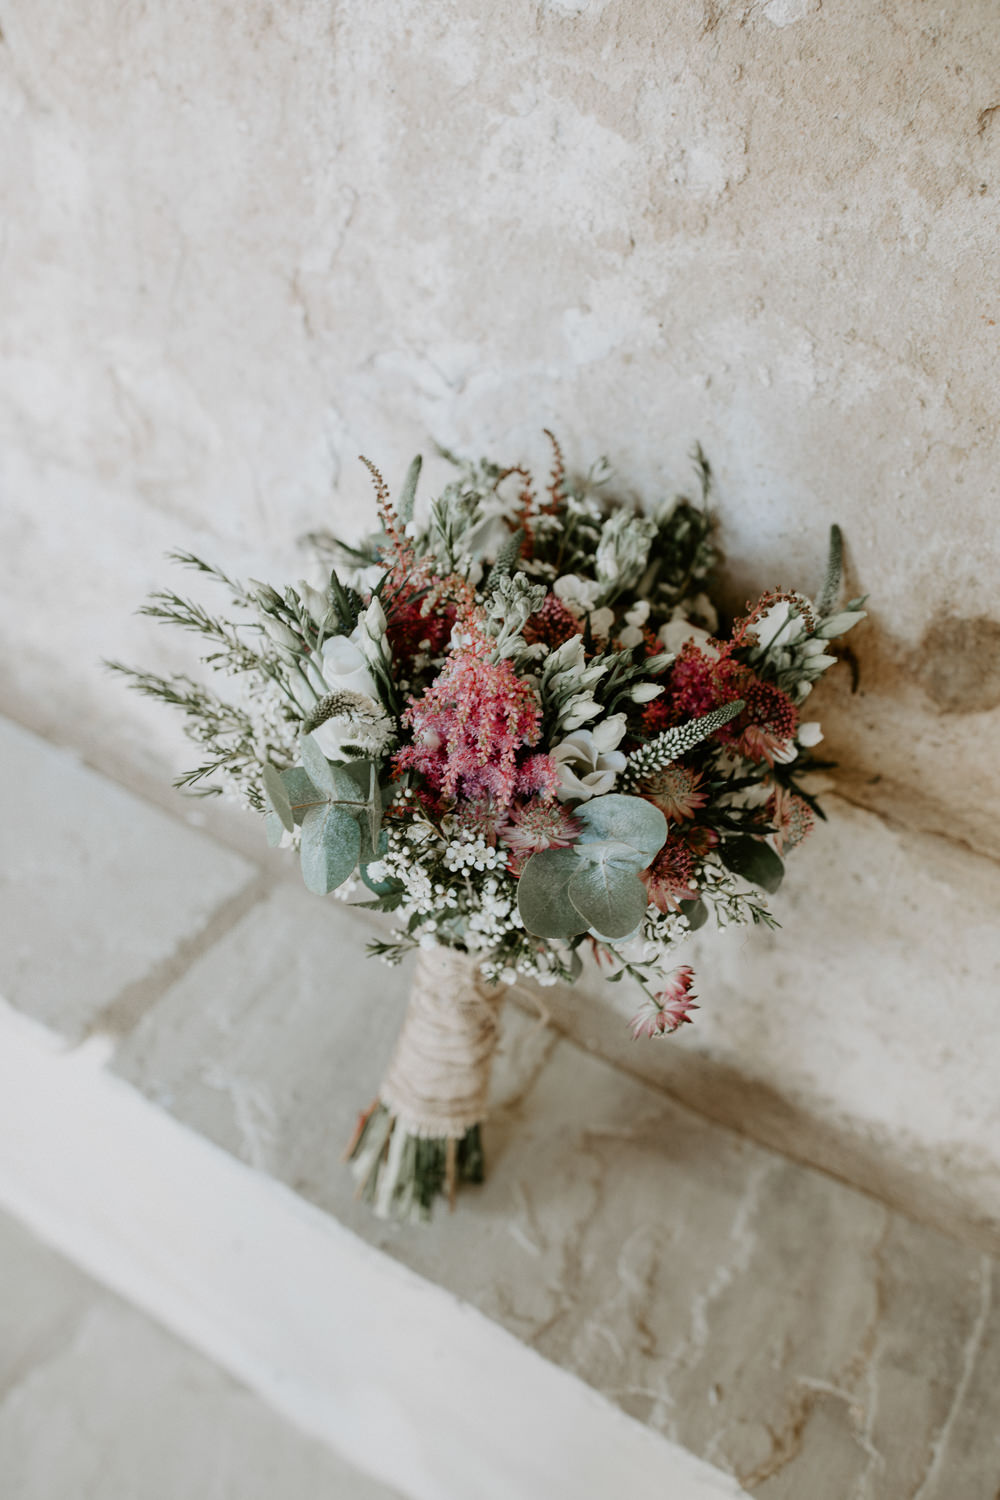 Bouquet Flowers Bride Bridal Pink Greenery Foliage Astilbe Hessian Twine Wax Barn Upcote Wedding Siobhan Beales Photography